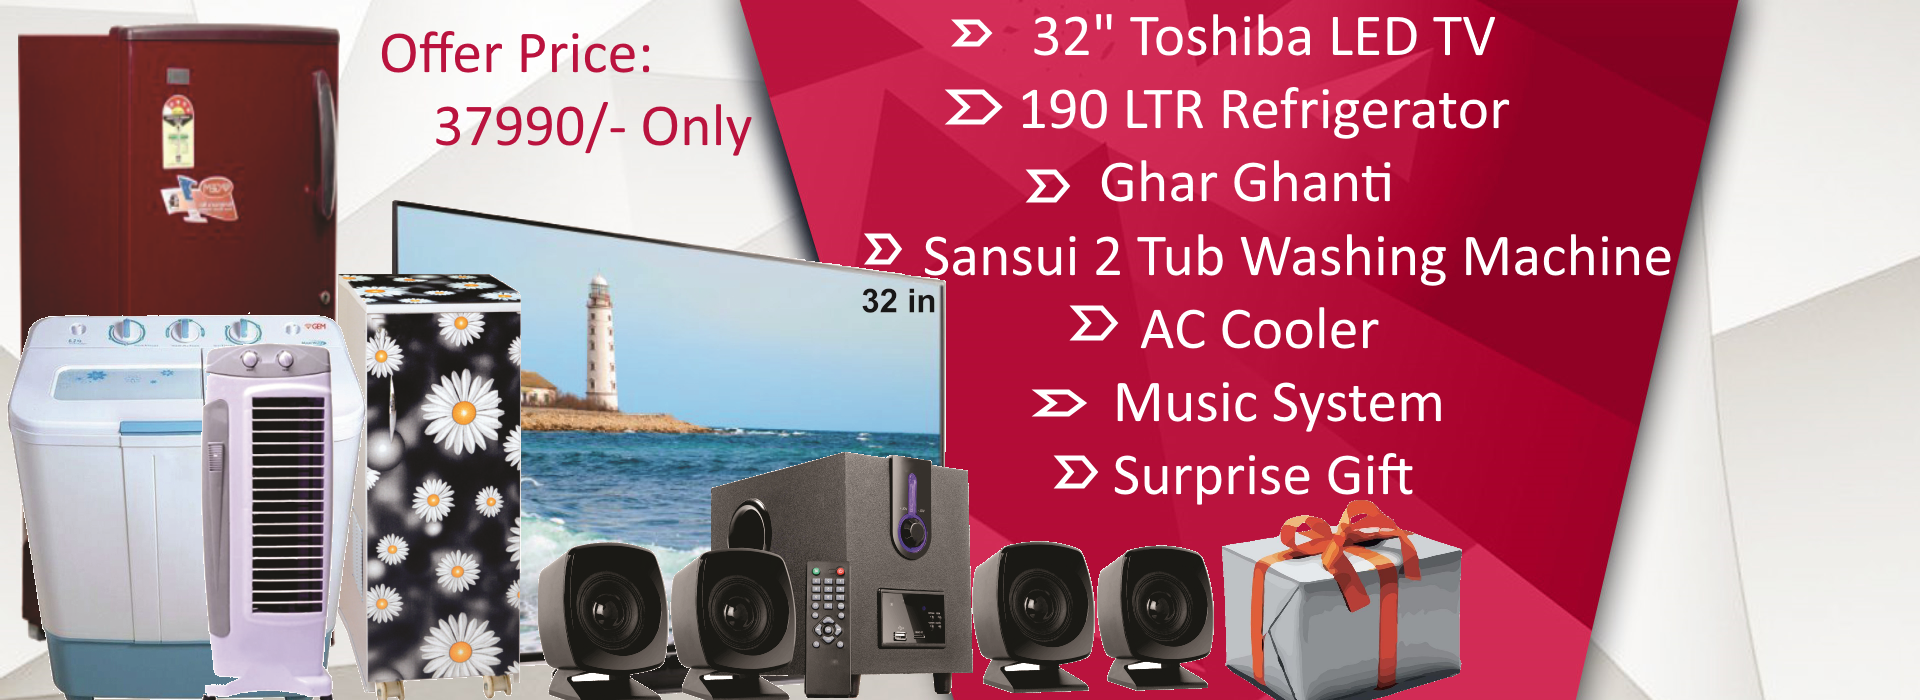 "32"" Toshiba LED TV+  Sansui 2 Tub Washing Machine + 190 Refrigirator + Ghar ghanti +  AC Cooler + Music System + Surprise Gift"